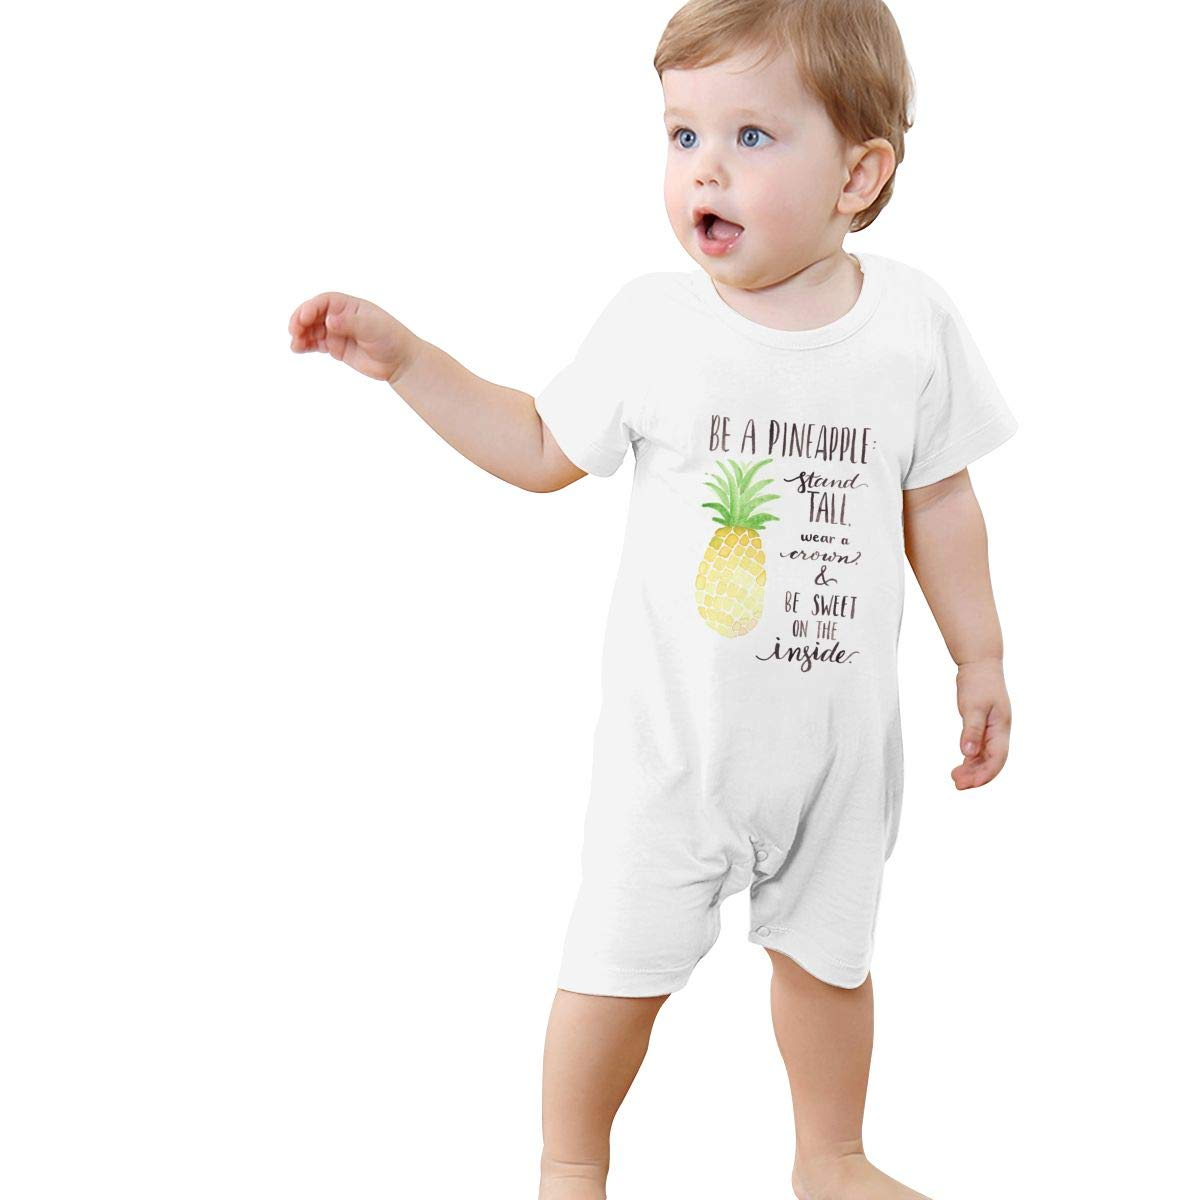 YINGFG Baby Boys Girls Short Sleeve Jumpsuit Be A Pineapple Quotes 1 Cotton Romper